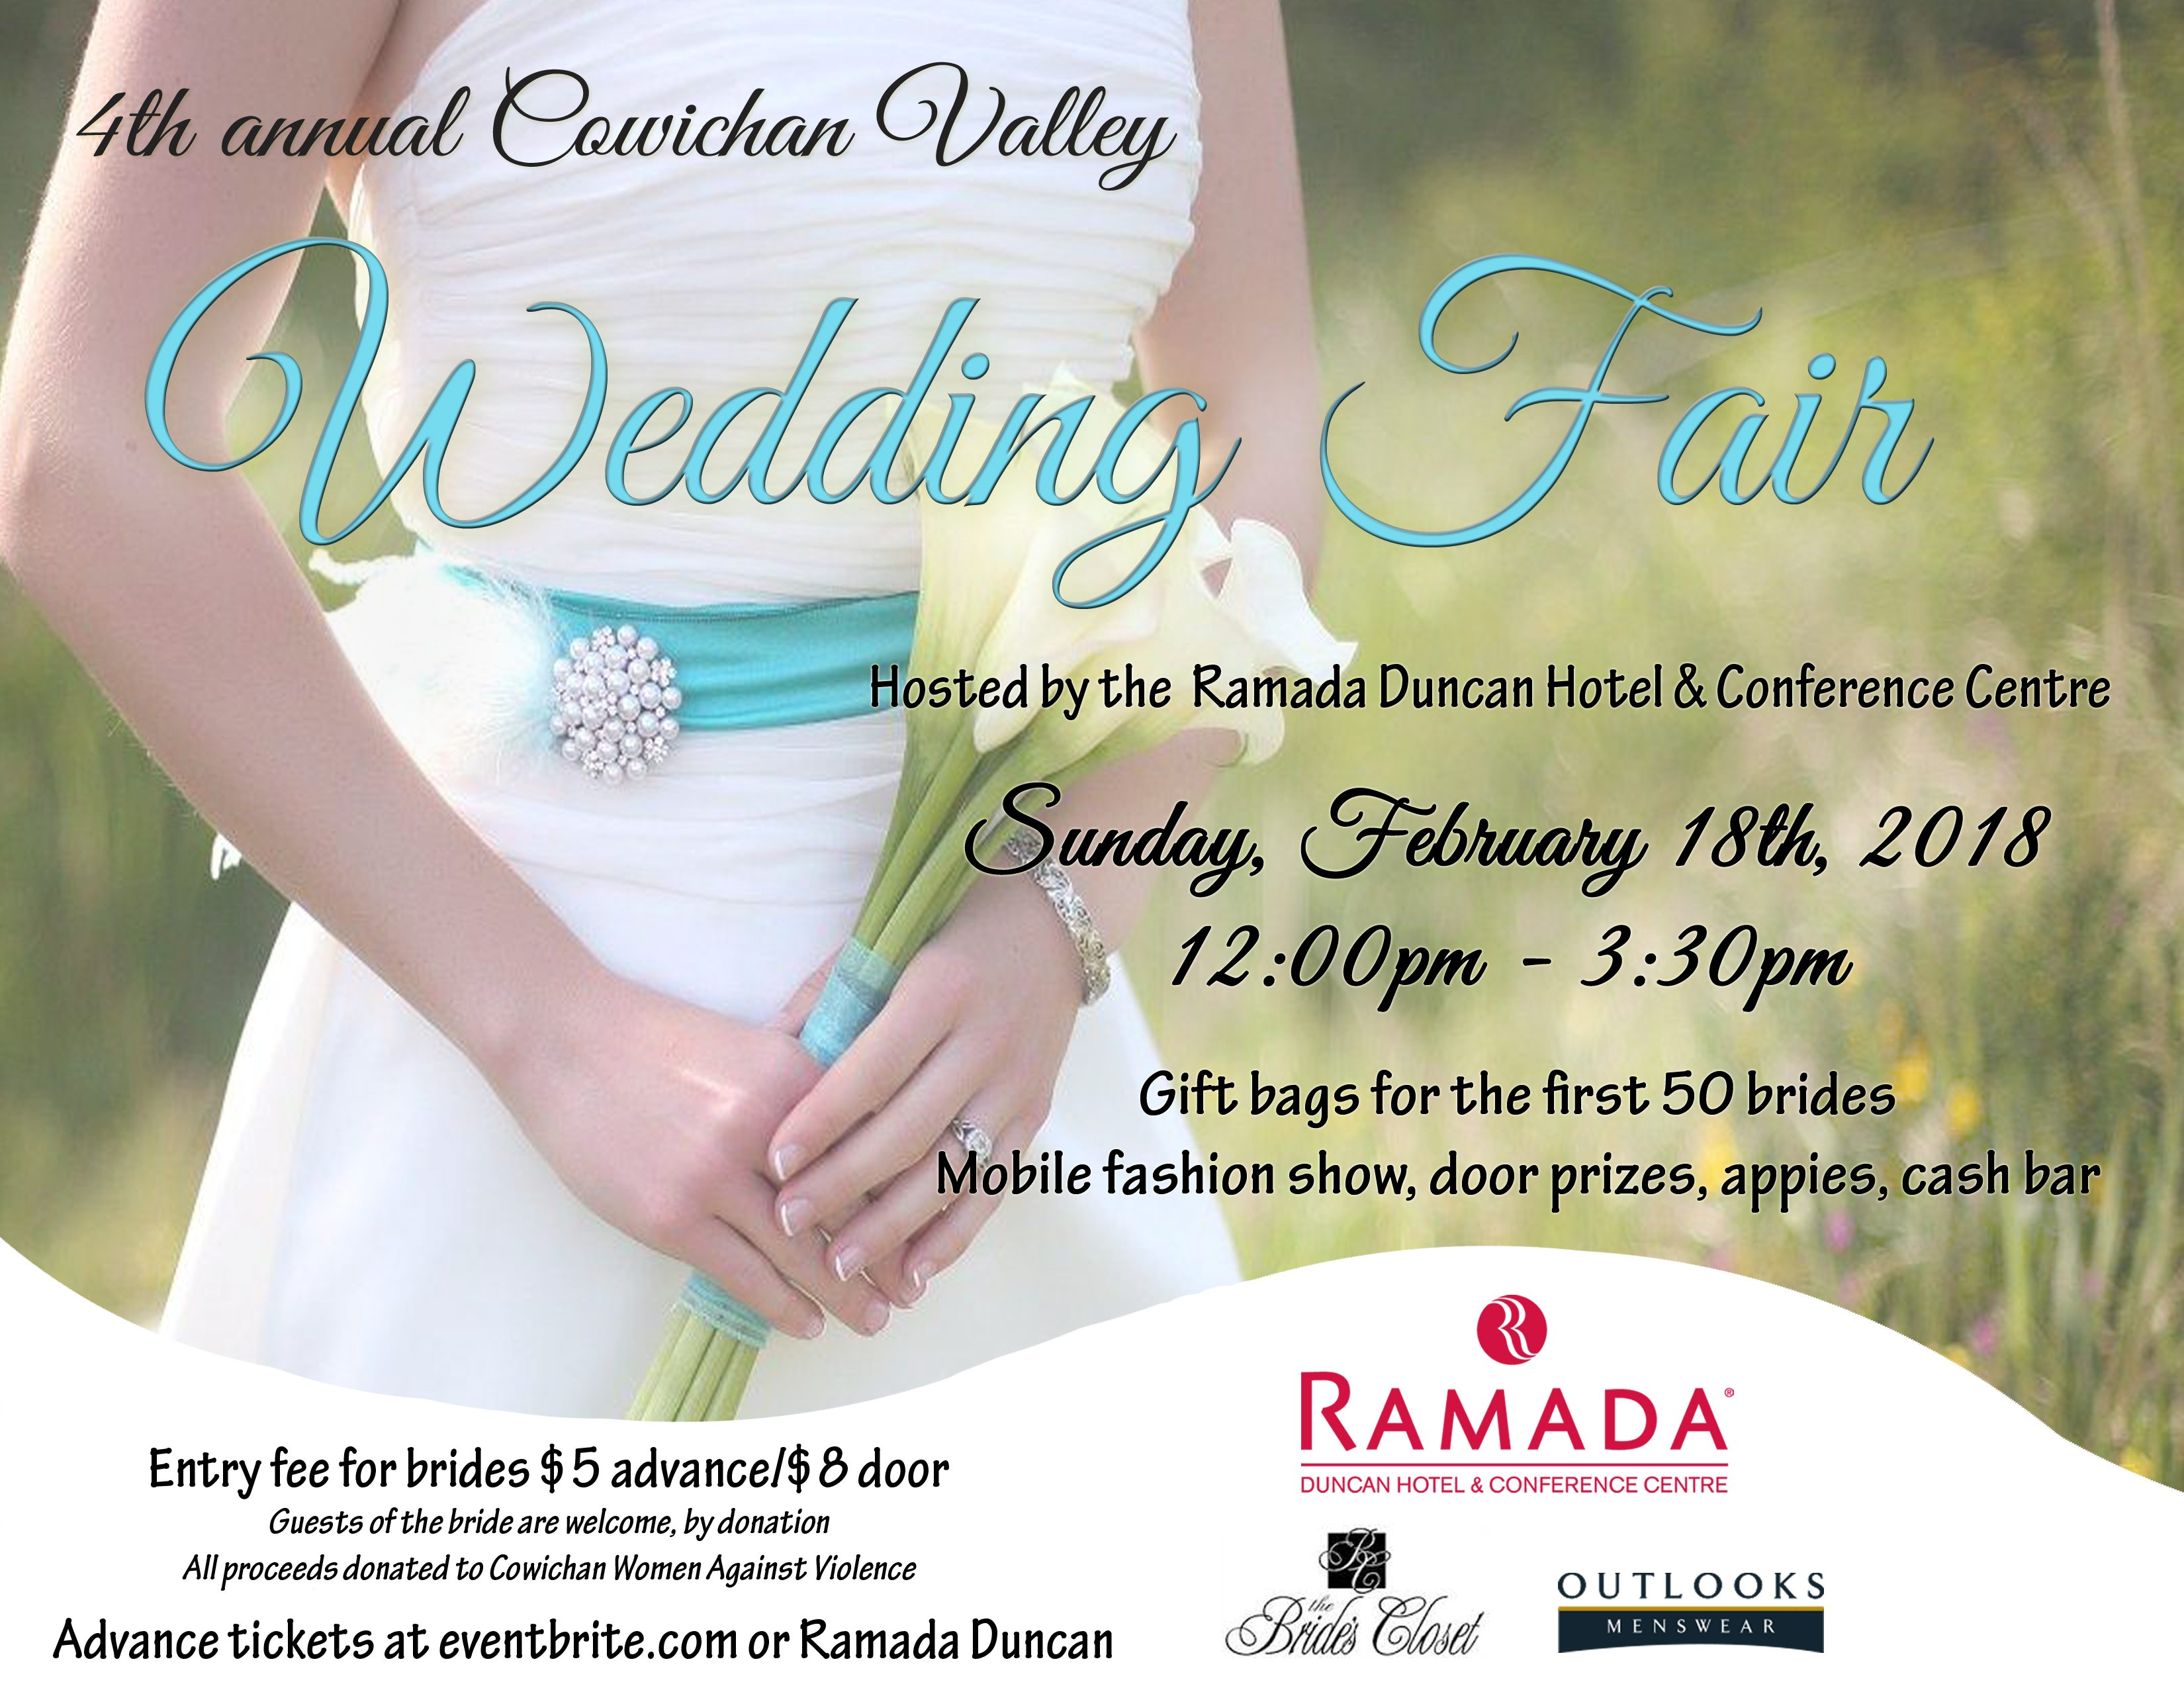 Wedding Fair Poster 2018